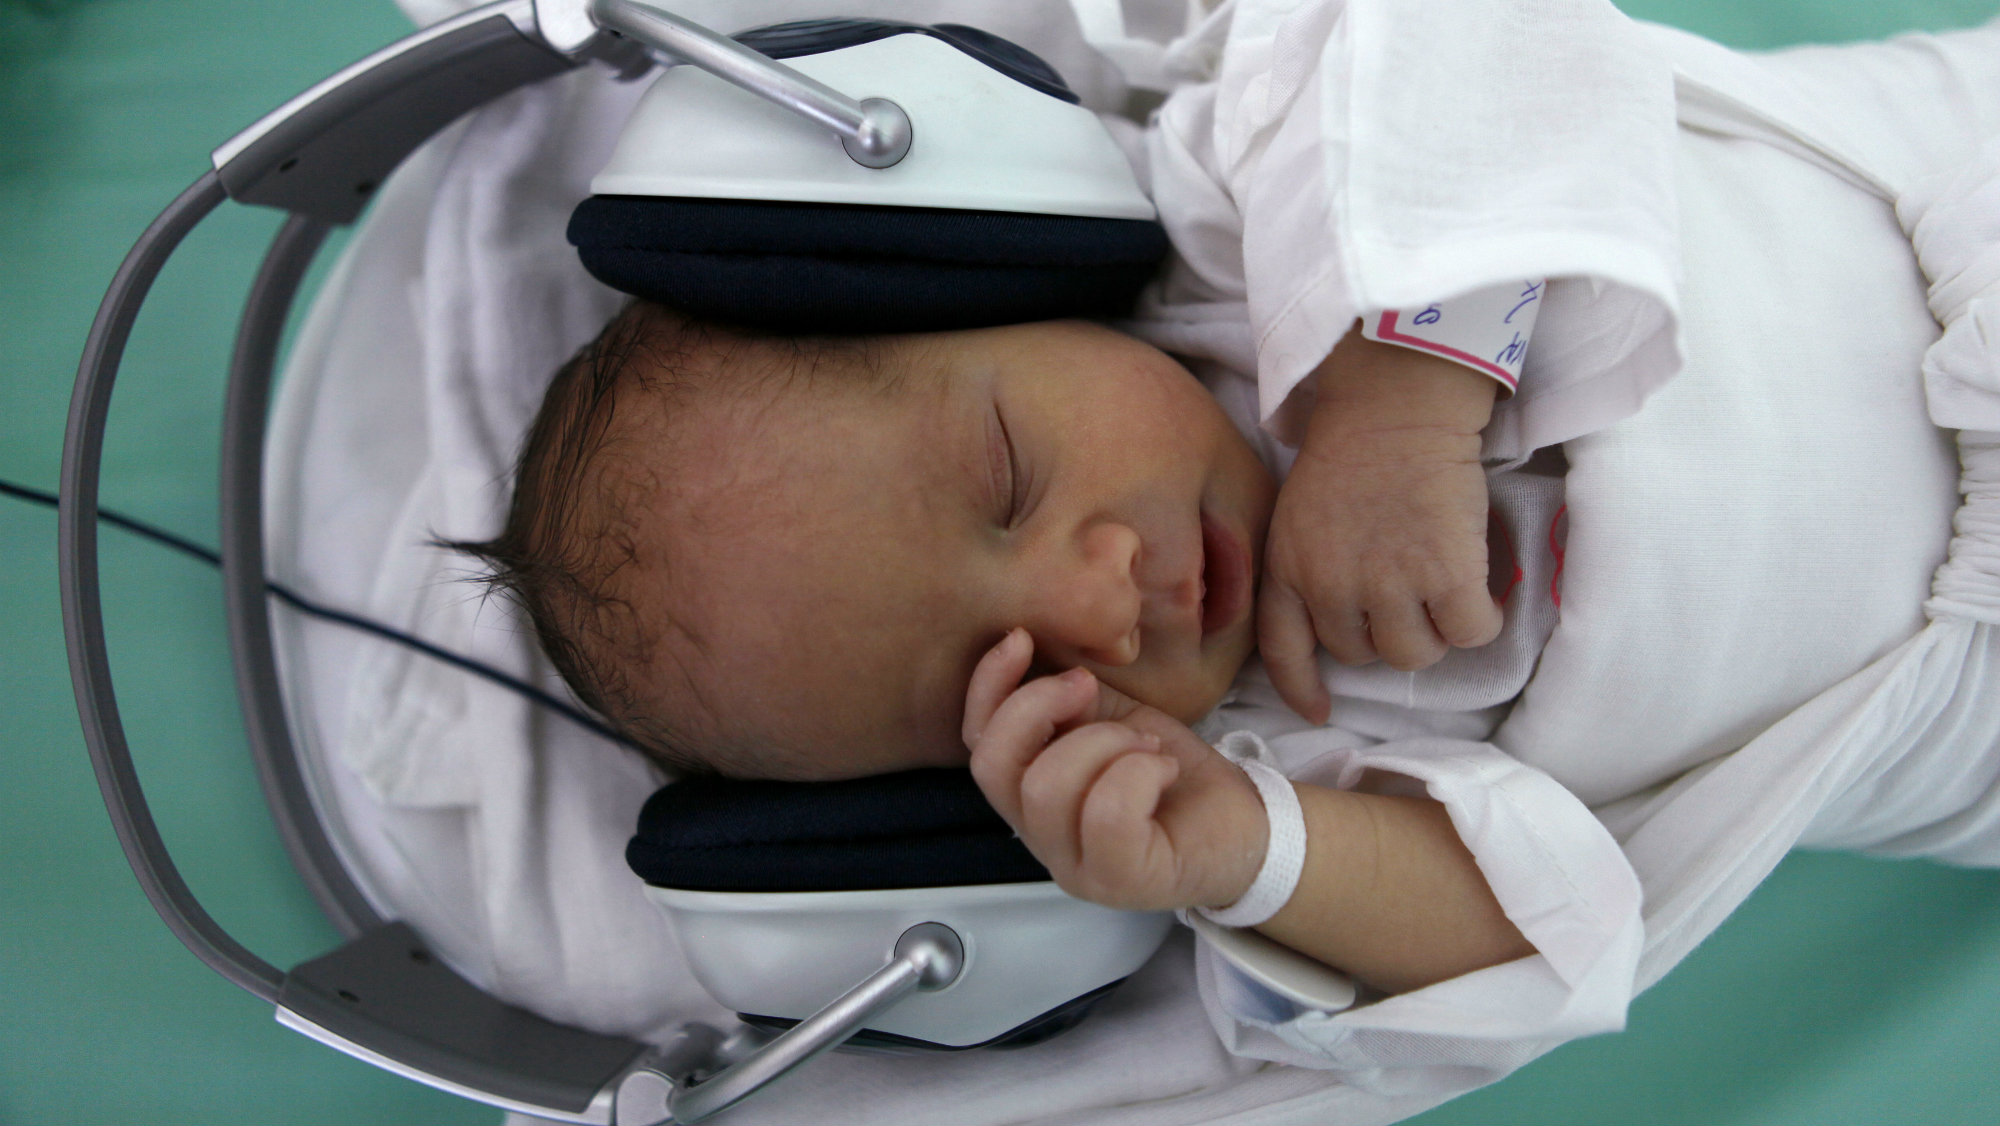 A newborn baby rests in a box, listening to music played through earphones in Saca Hospital in Kosice